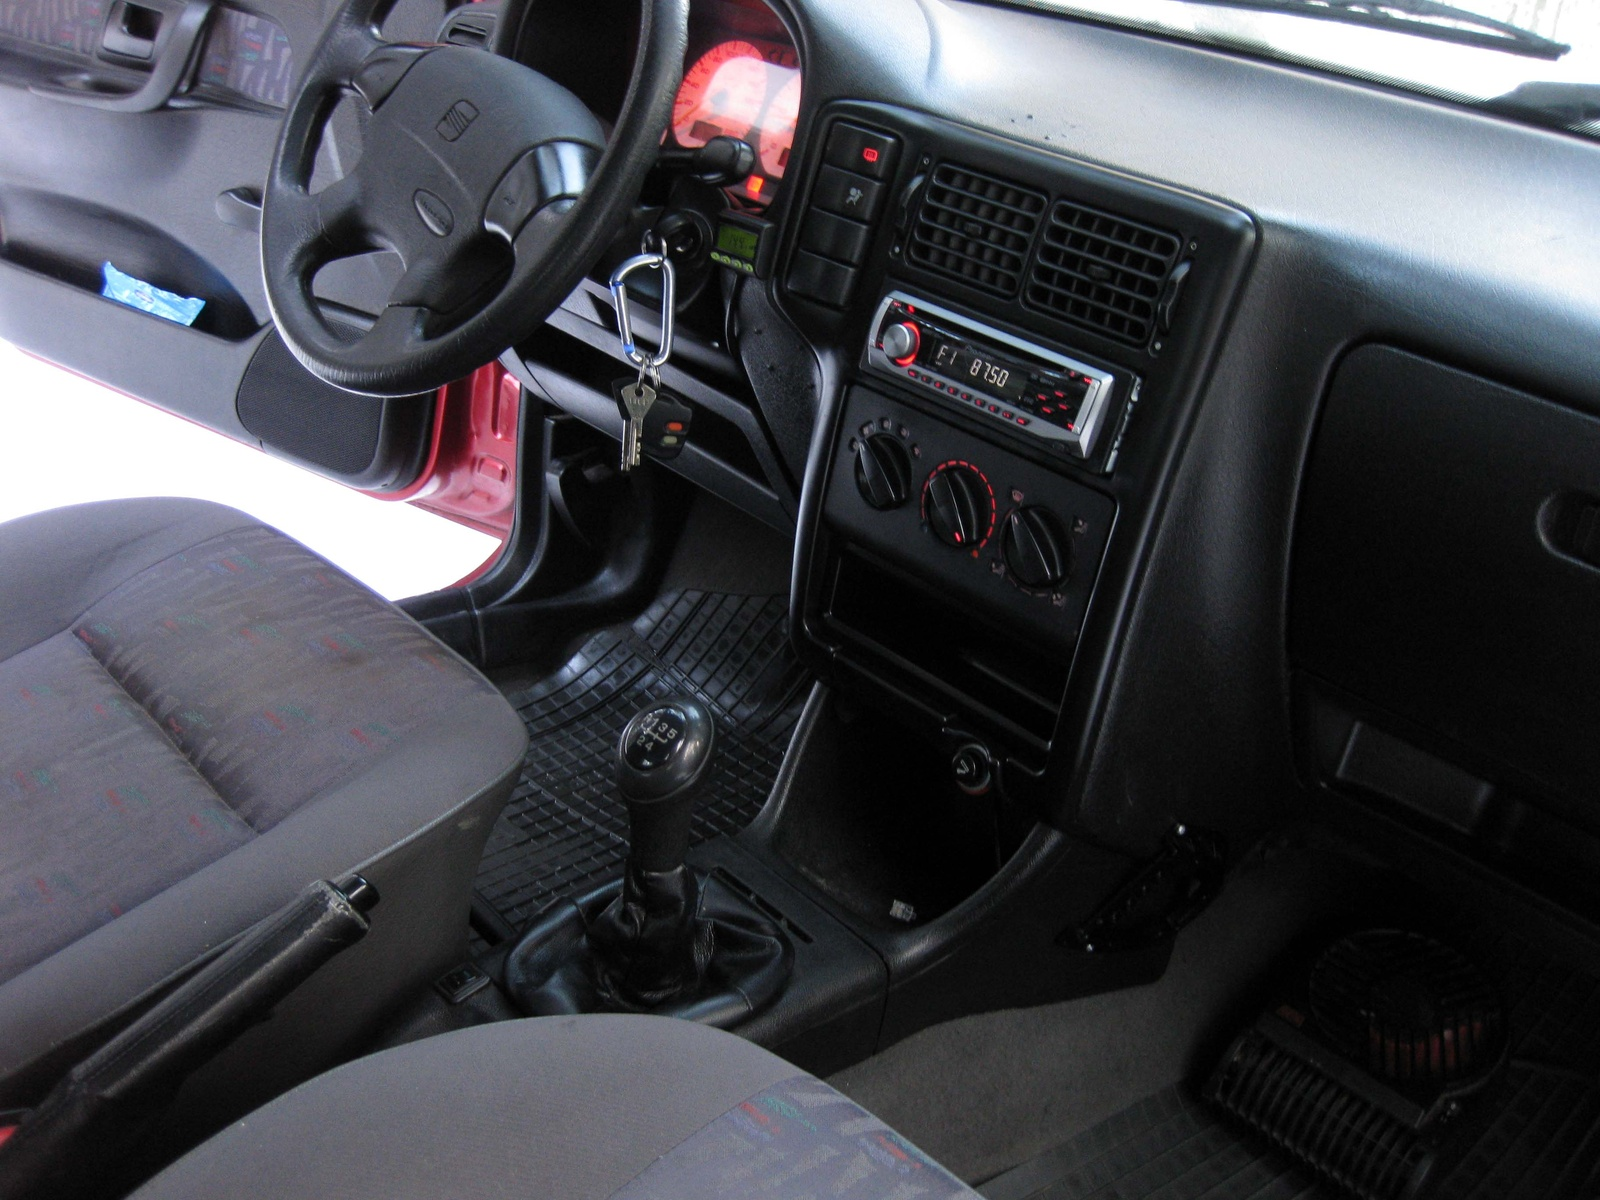 1998 seat cordoba pictures information and specs auto for Seat cordoba interior